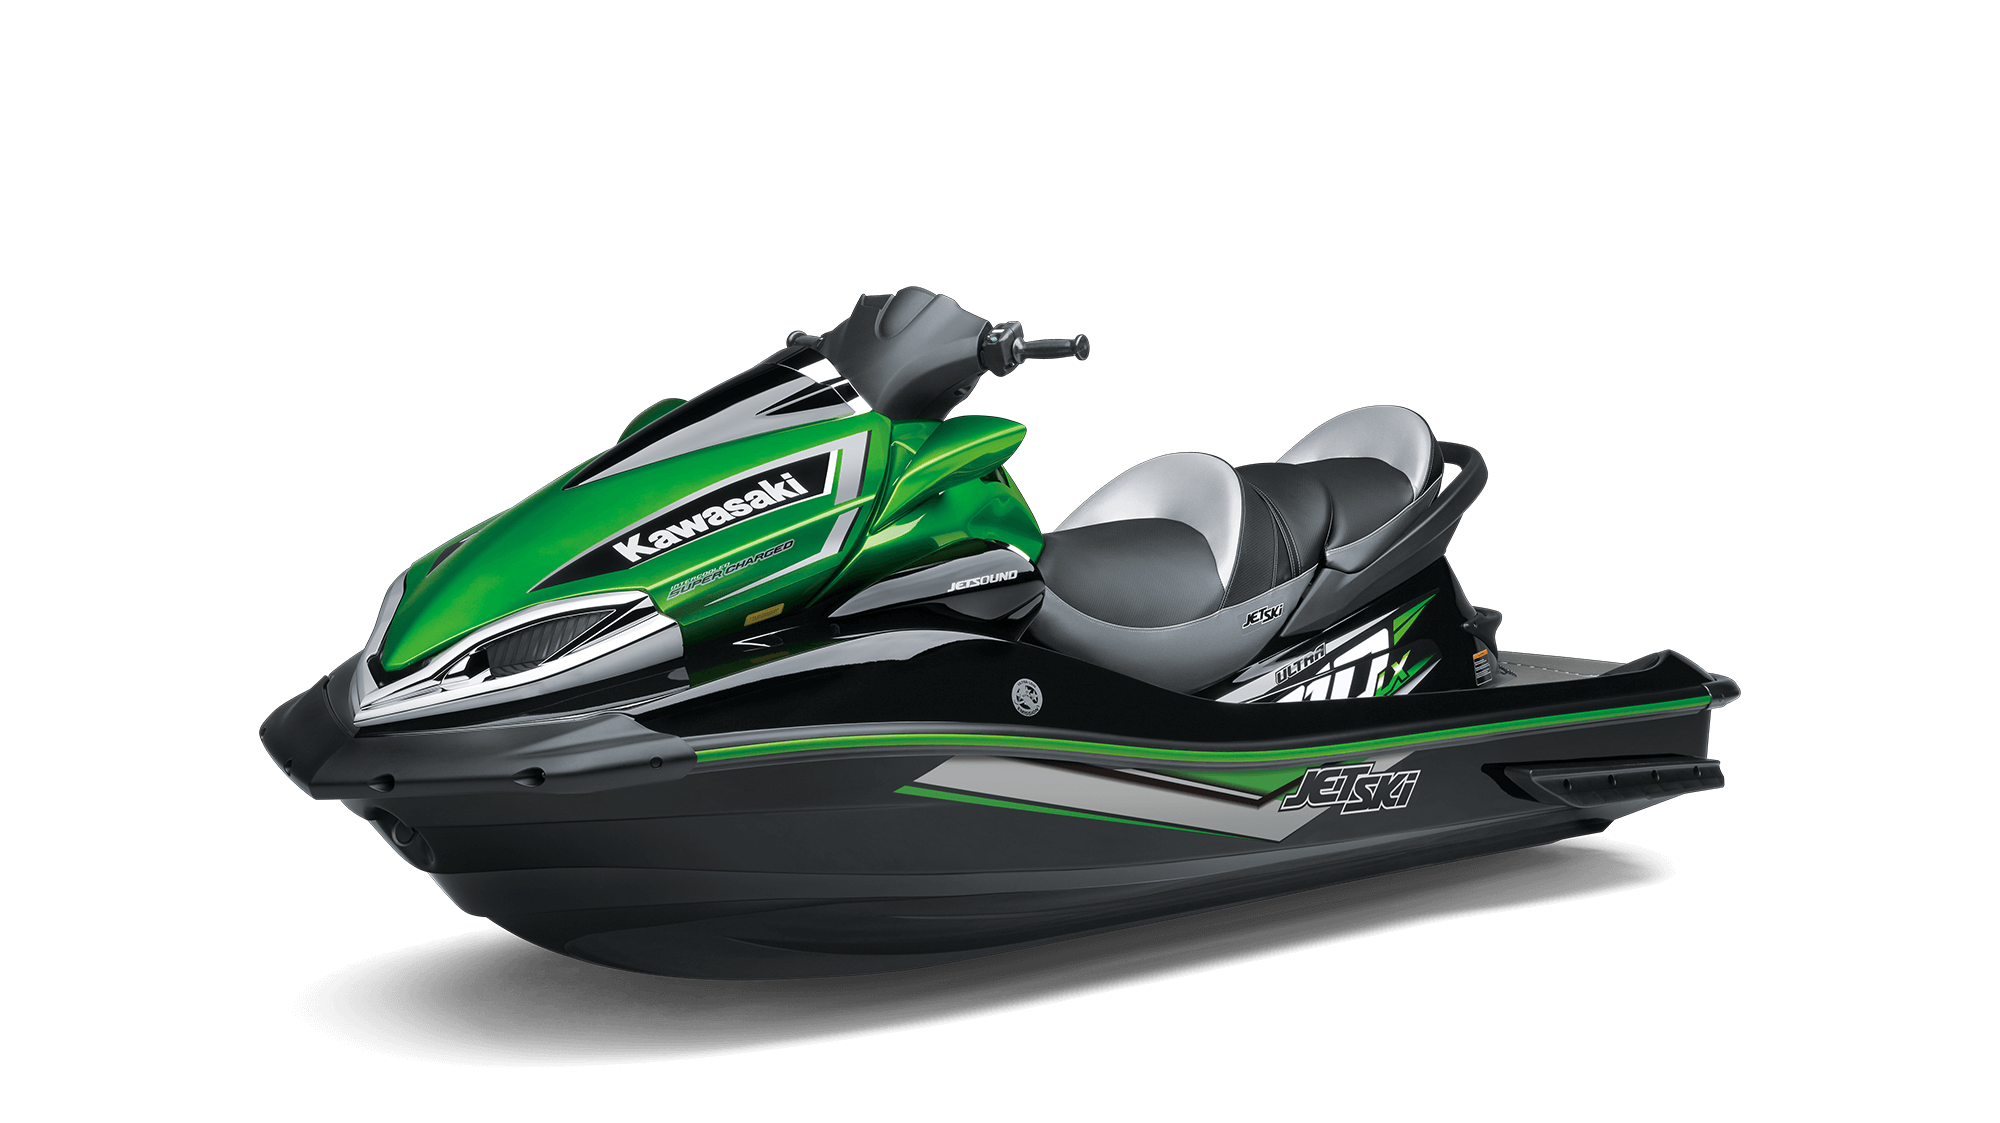 hight resolution of 2019 jet ski ultra 310lx